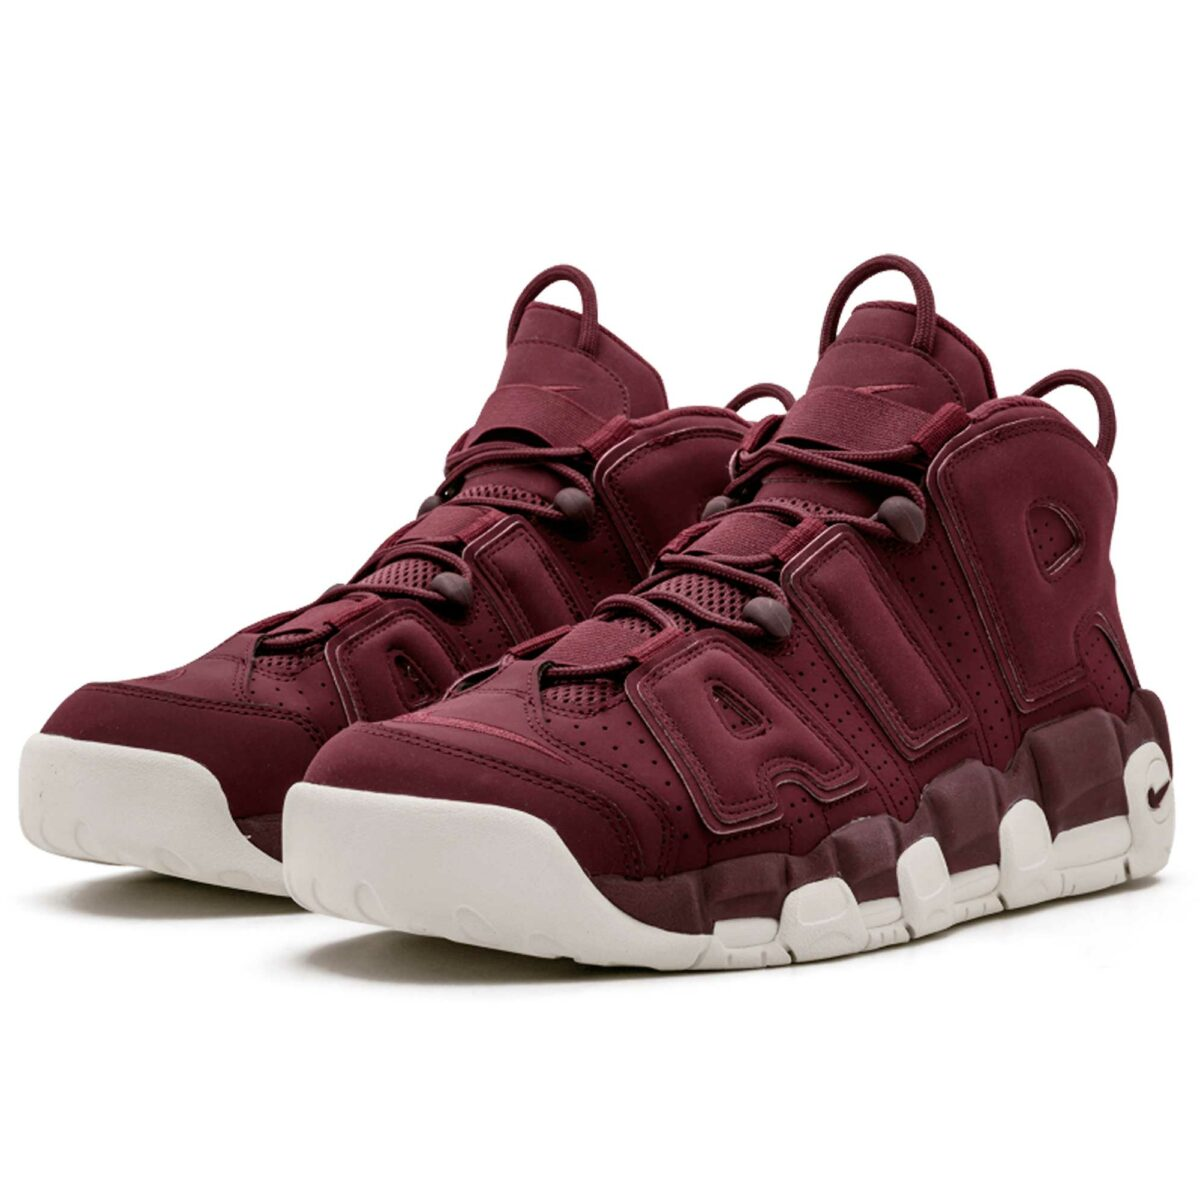 nike air more uptempo 96 QS maroon 921949-600 купить